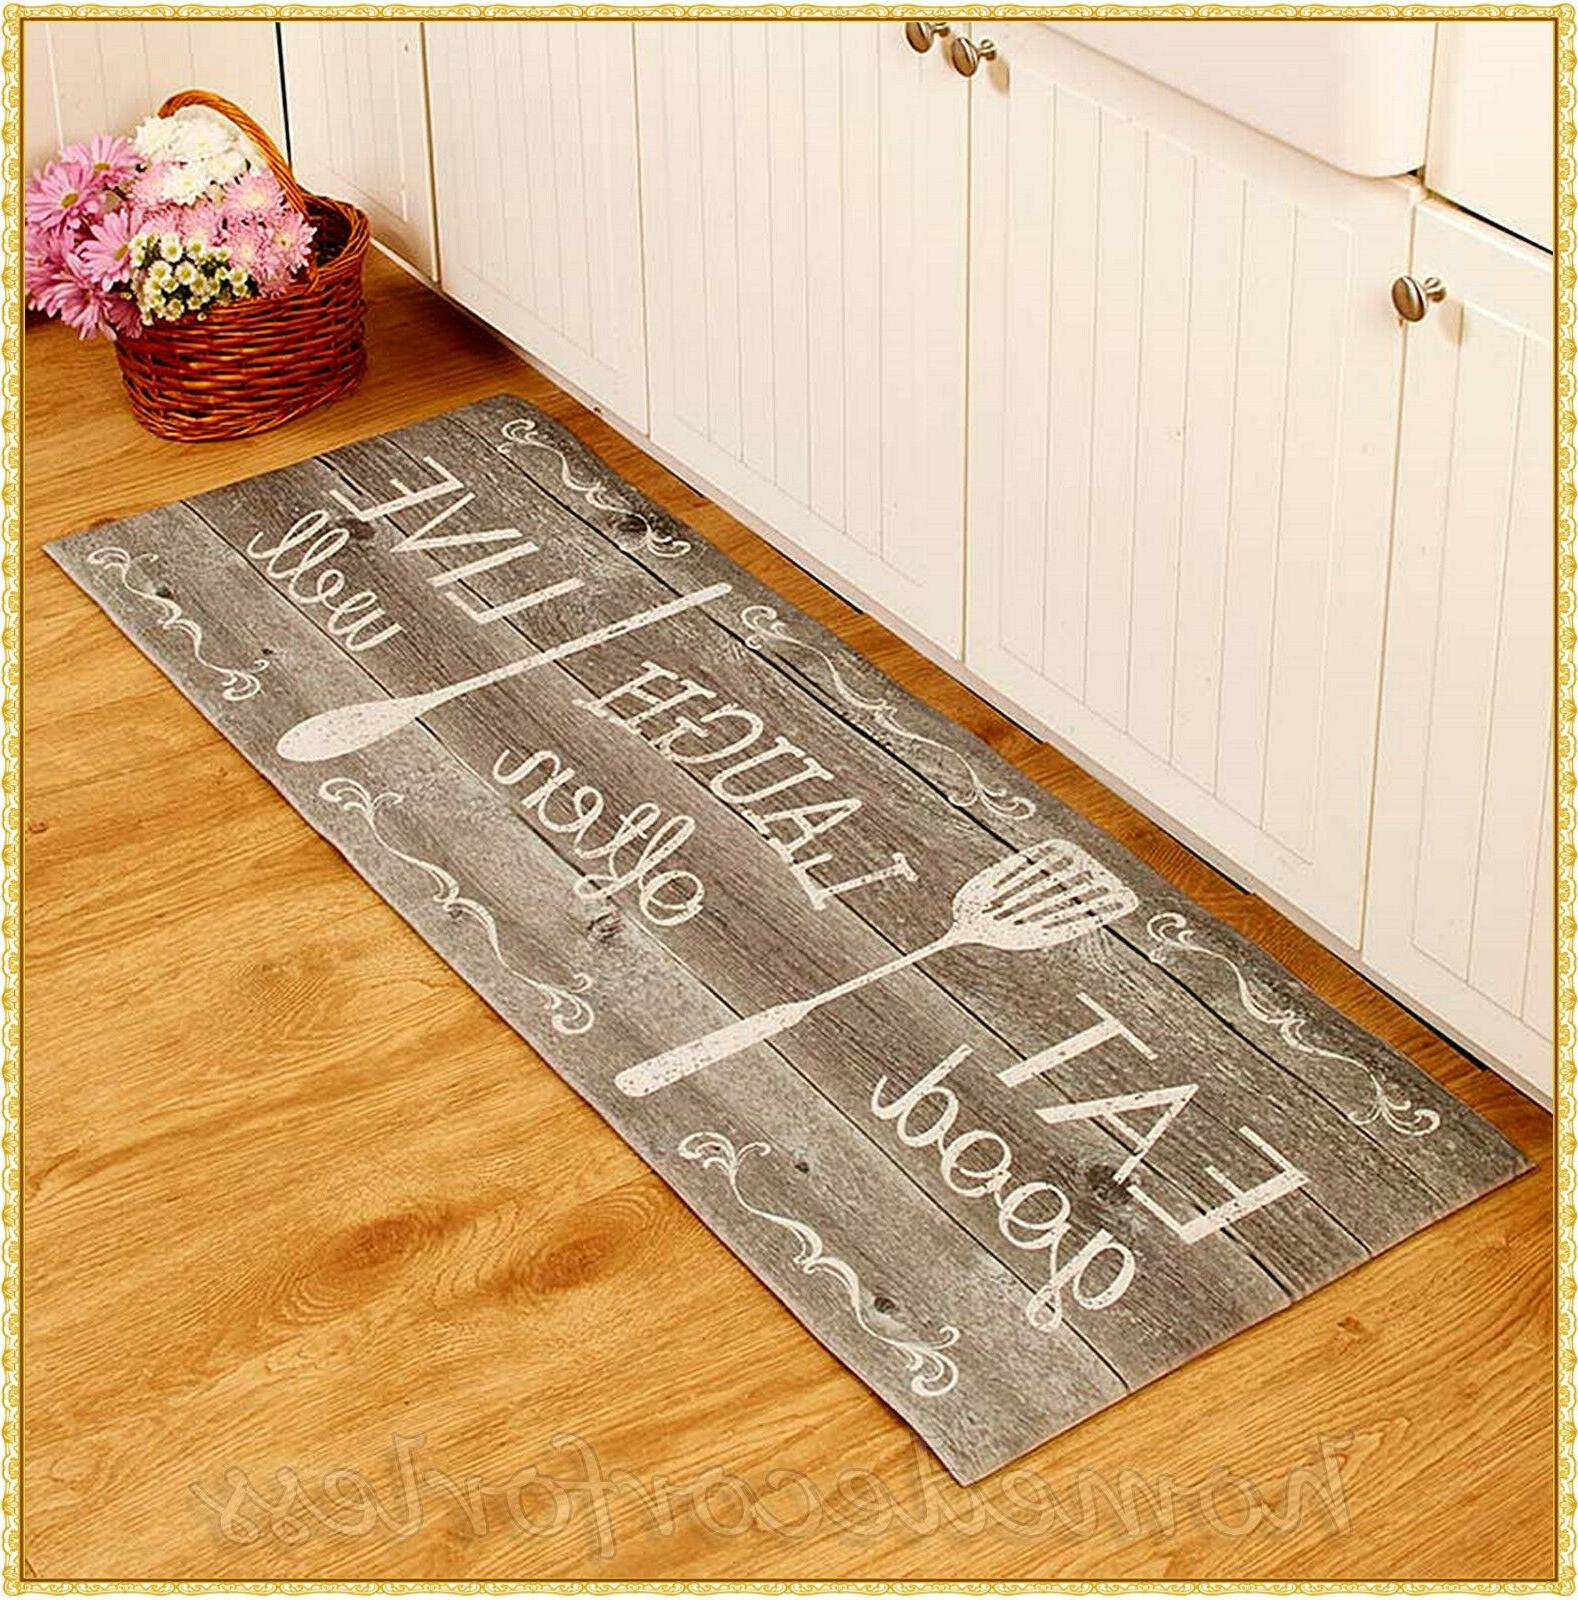 EAT LAUGH LIVE Cushioned Soft Kitchen Runner Rug Mat Country